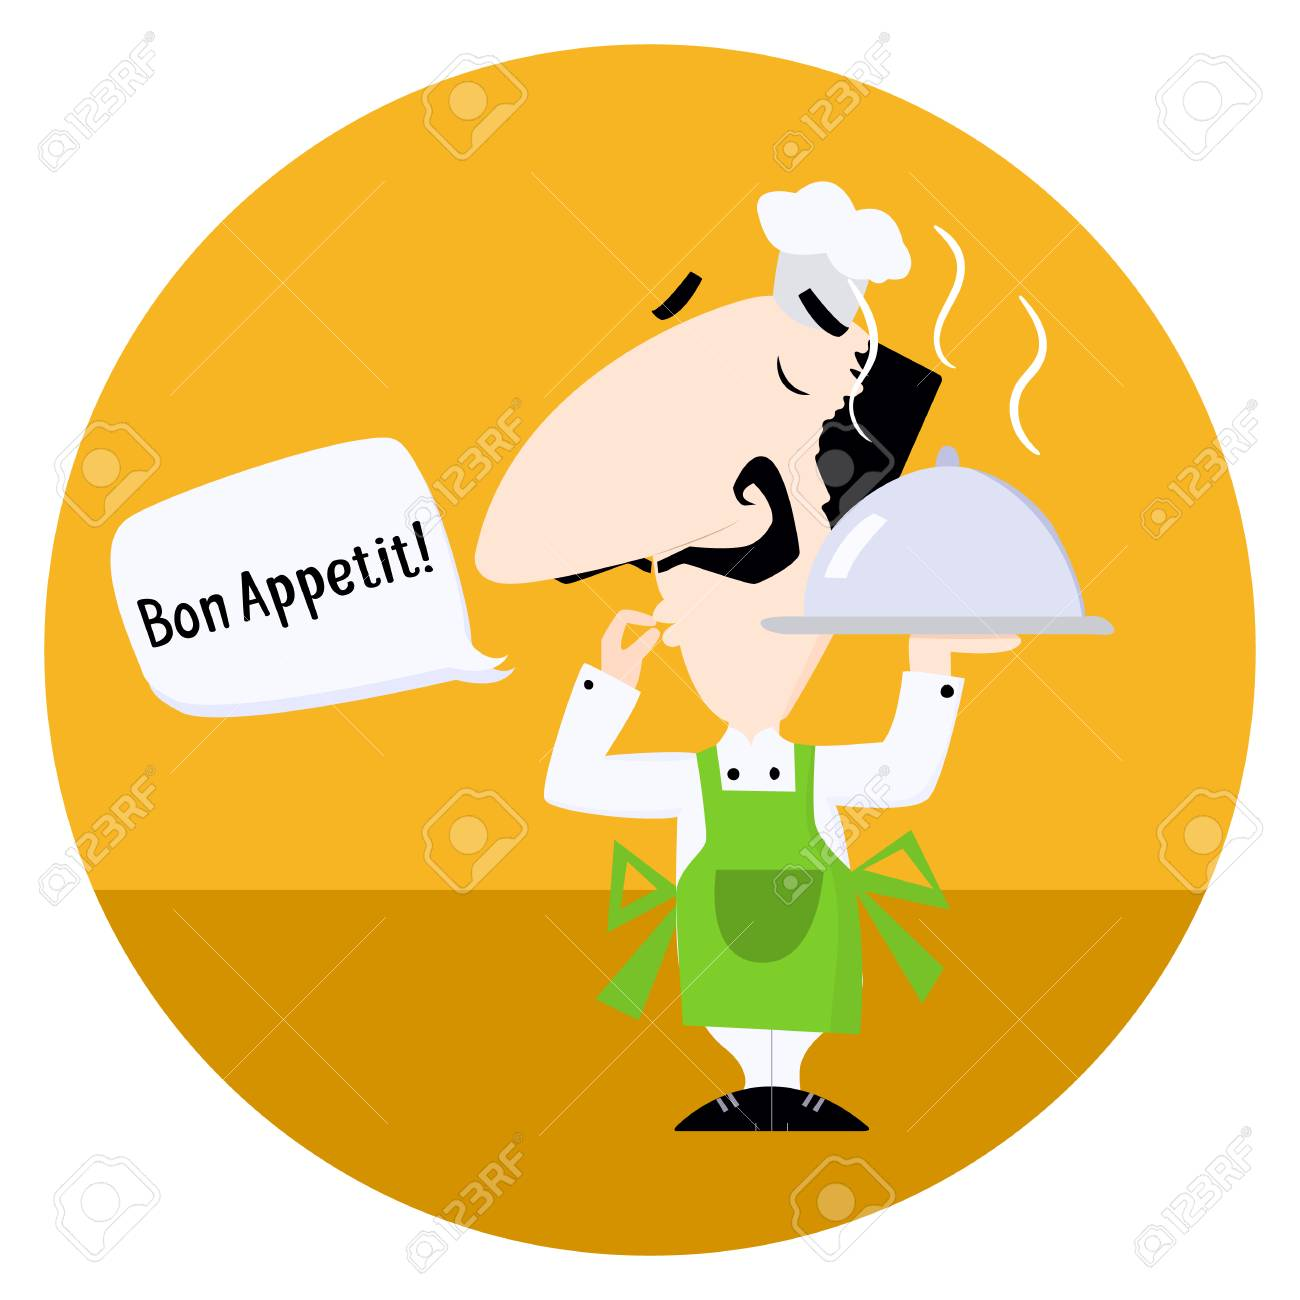 Italian Chef Saying Bon Appetit Royalty Free Cliparts Vectors And Stock Illustration Image 73964673